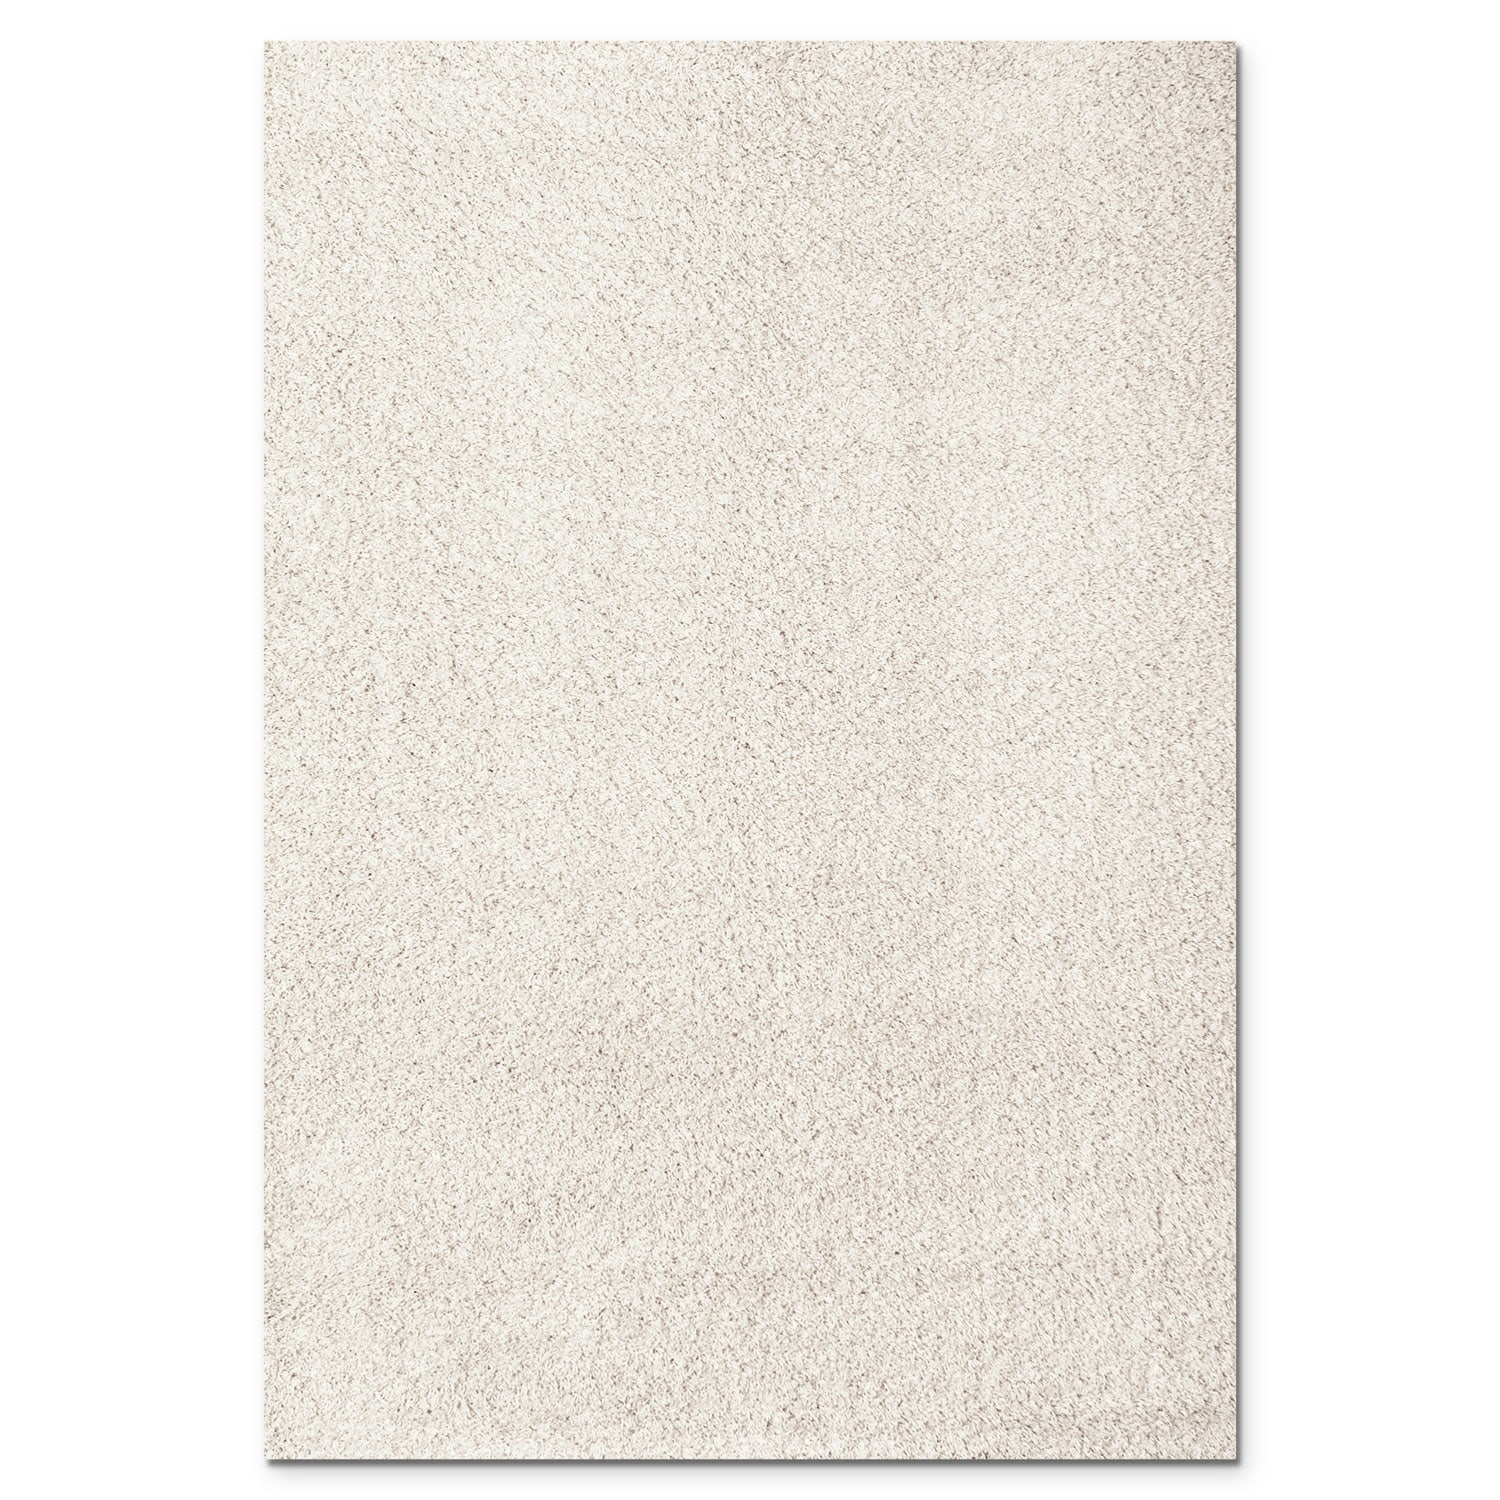 Domino White Shag Area Rug (8' x 10')